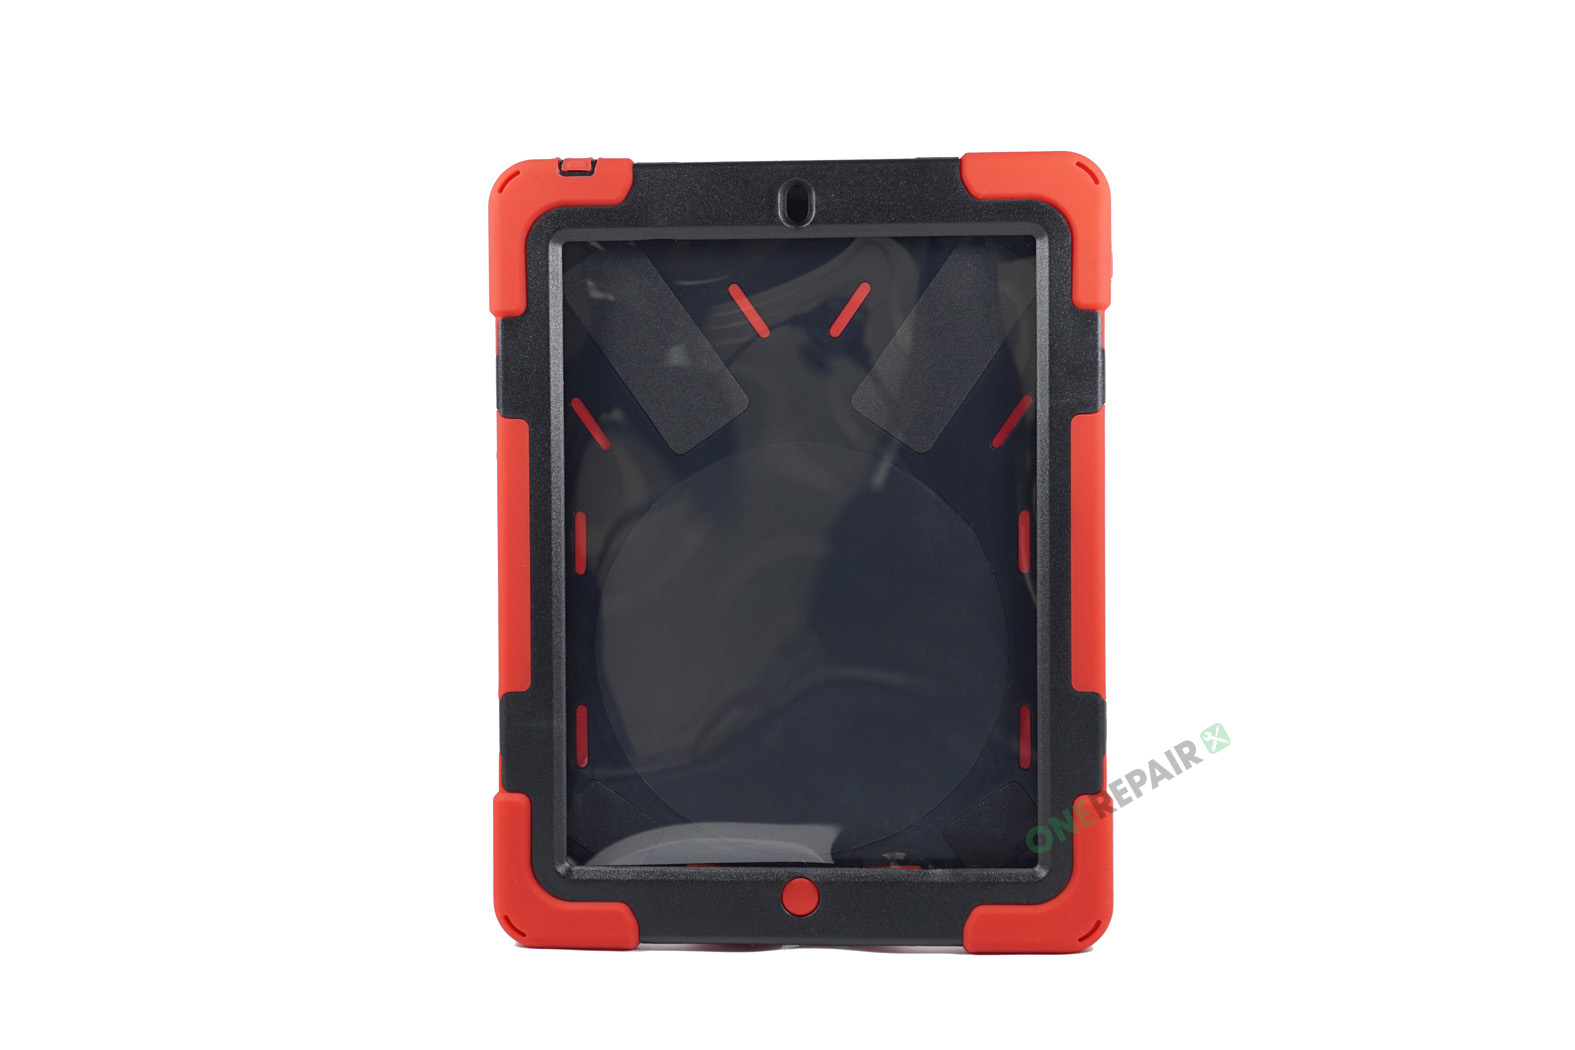 350984_iPad_2_3_4_A1395_A1396_A1430_A1403_1458_A1459_A1460_A1397_3-in-1_Bagcover_Cover_Børne_Skole_Hardcase_Roed_Billig_Godt_Beskyttelse_OneRepair_WM_00002